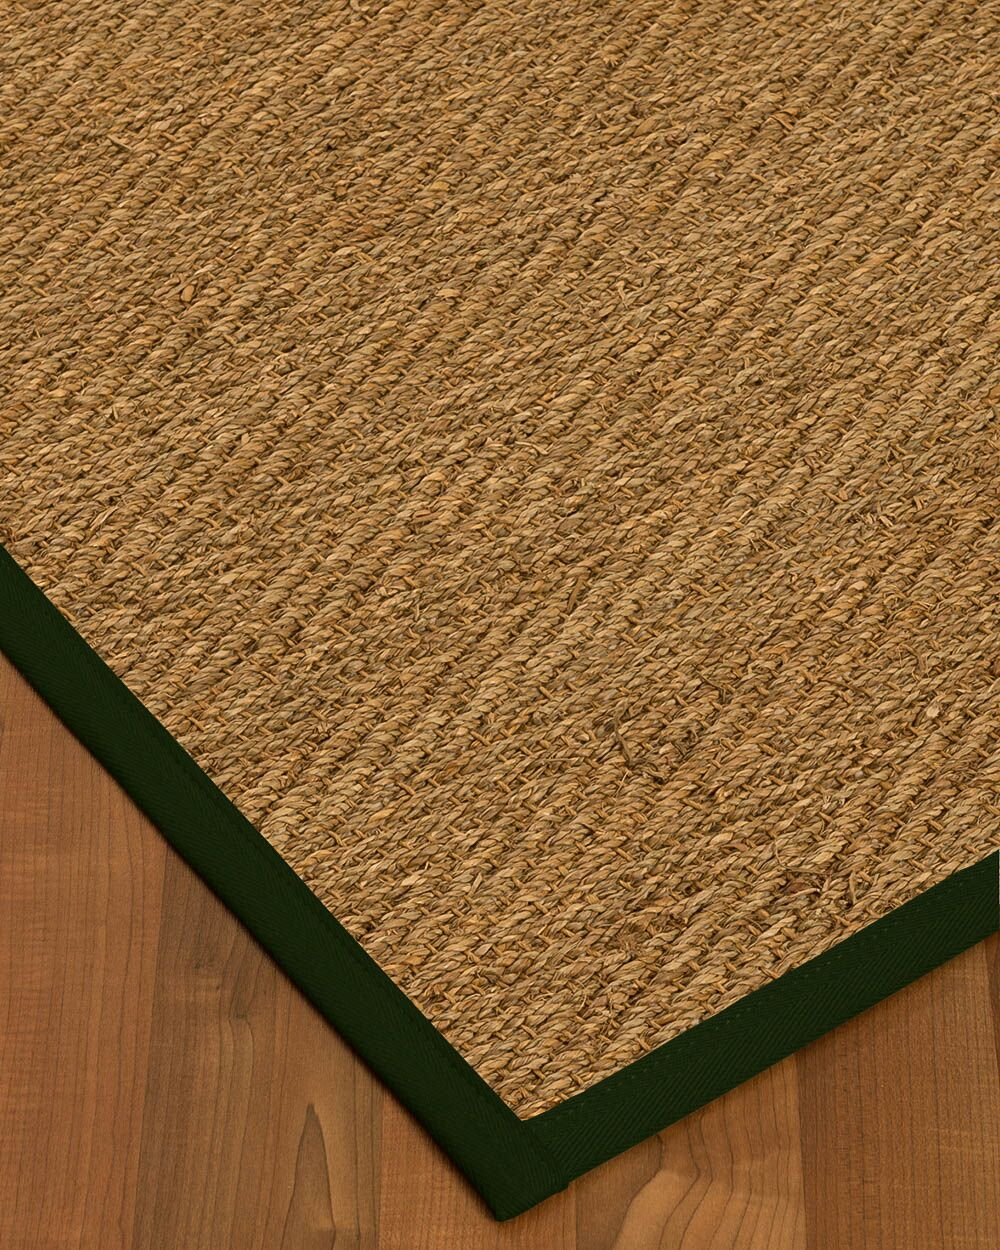 Chavarria Border Hand-Woven Beige/Moss Area Rug Rug Size: Rectangle 8' x 10', Rug Pad Included: Yes